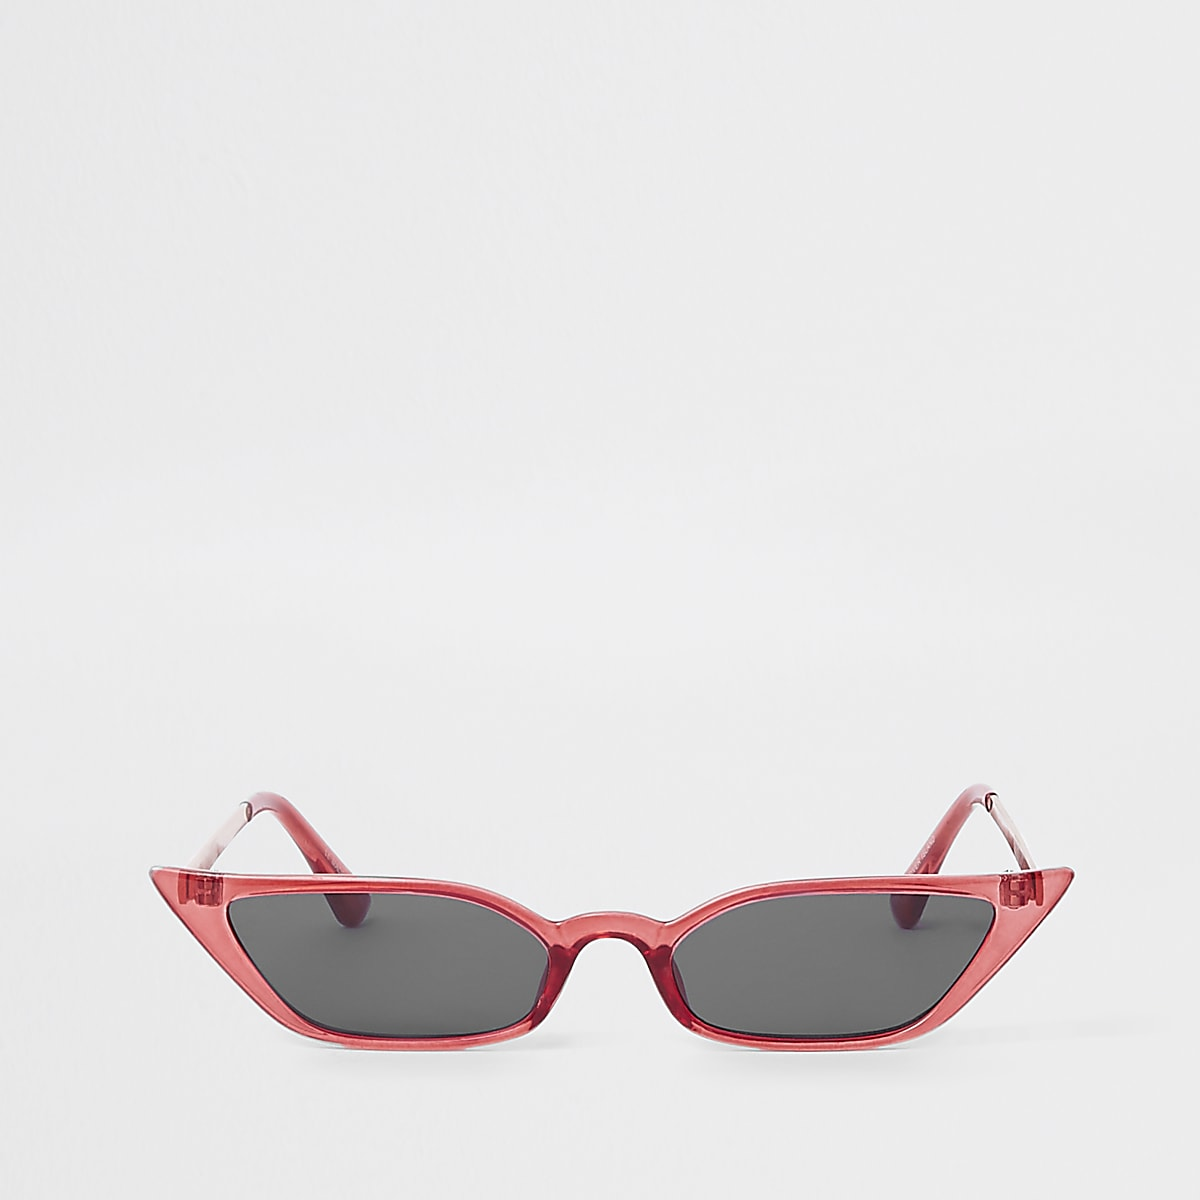 Red slim visor sunglasses